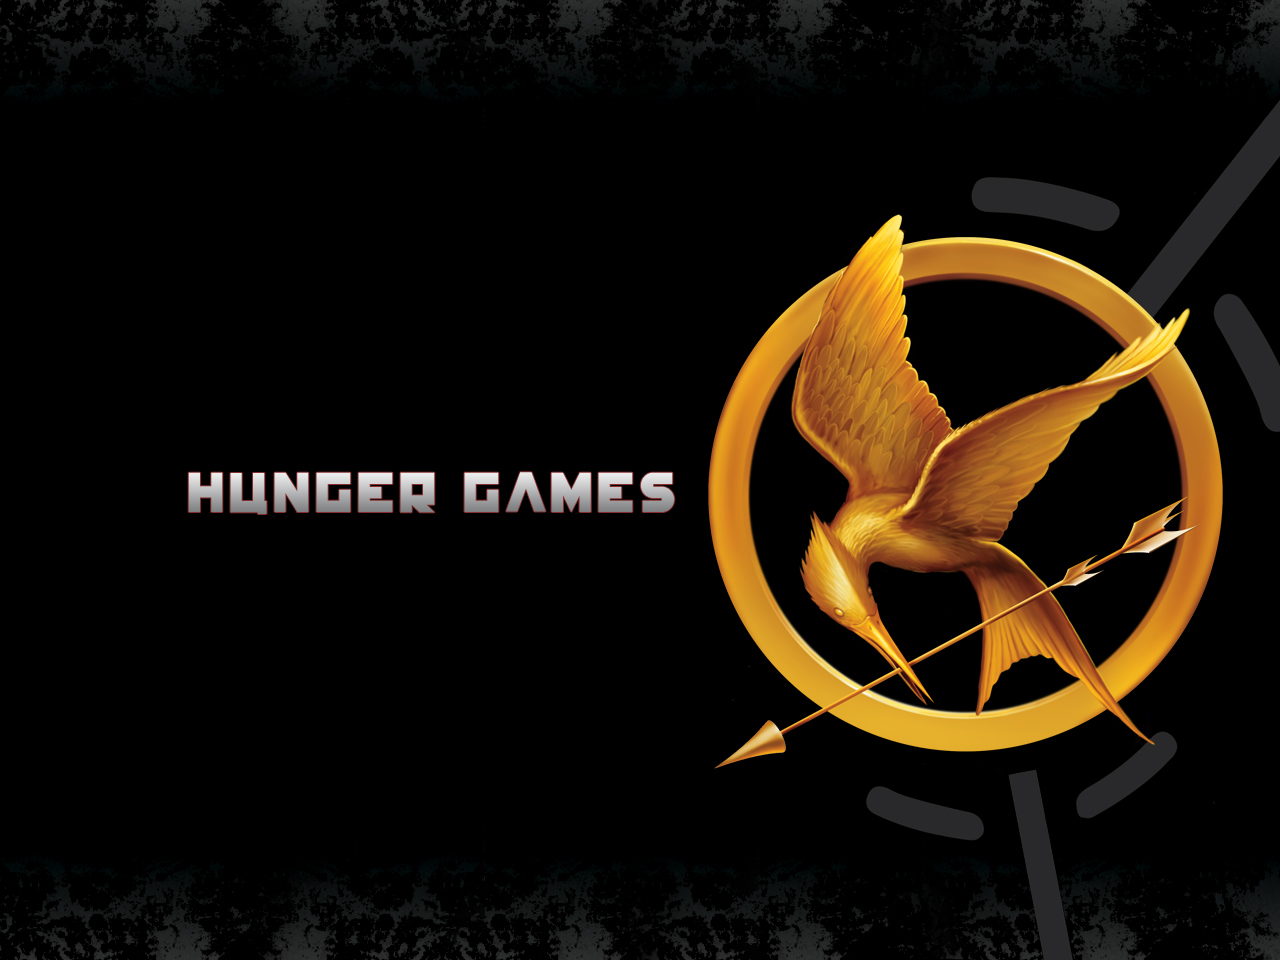 Secret Life of an Expat: The Hunger Games [BOOK WEEK 2!]